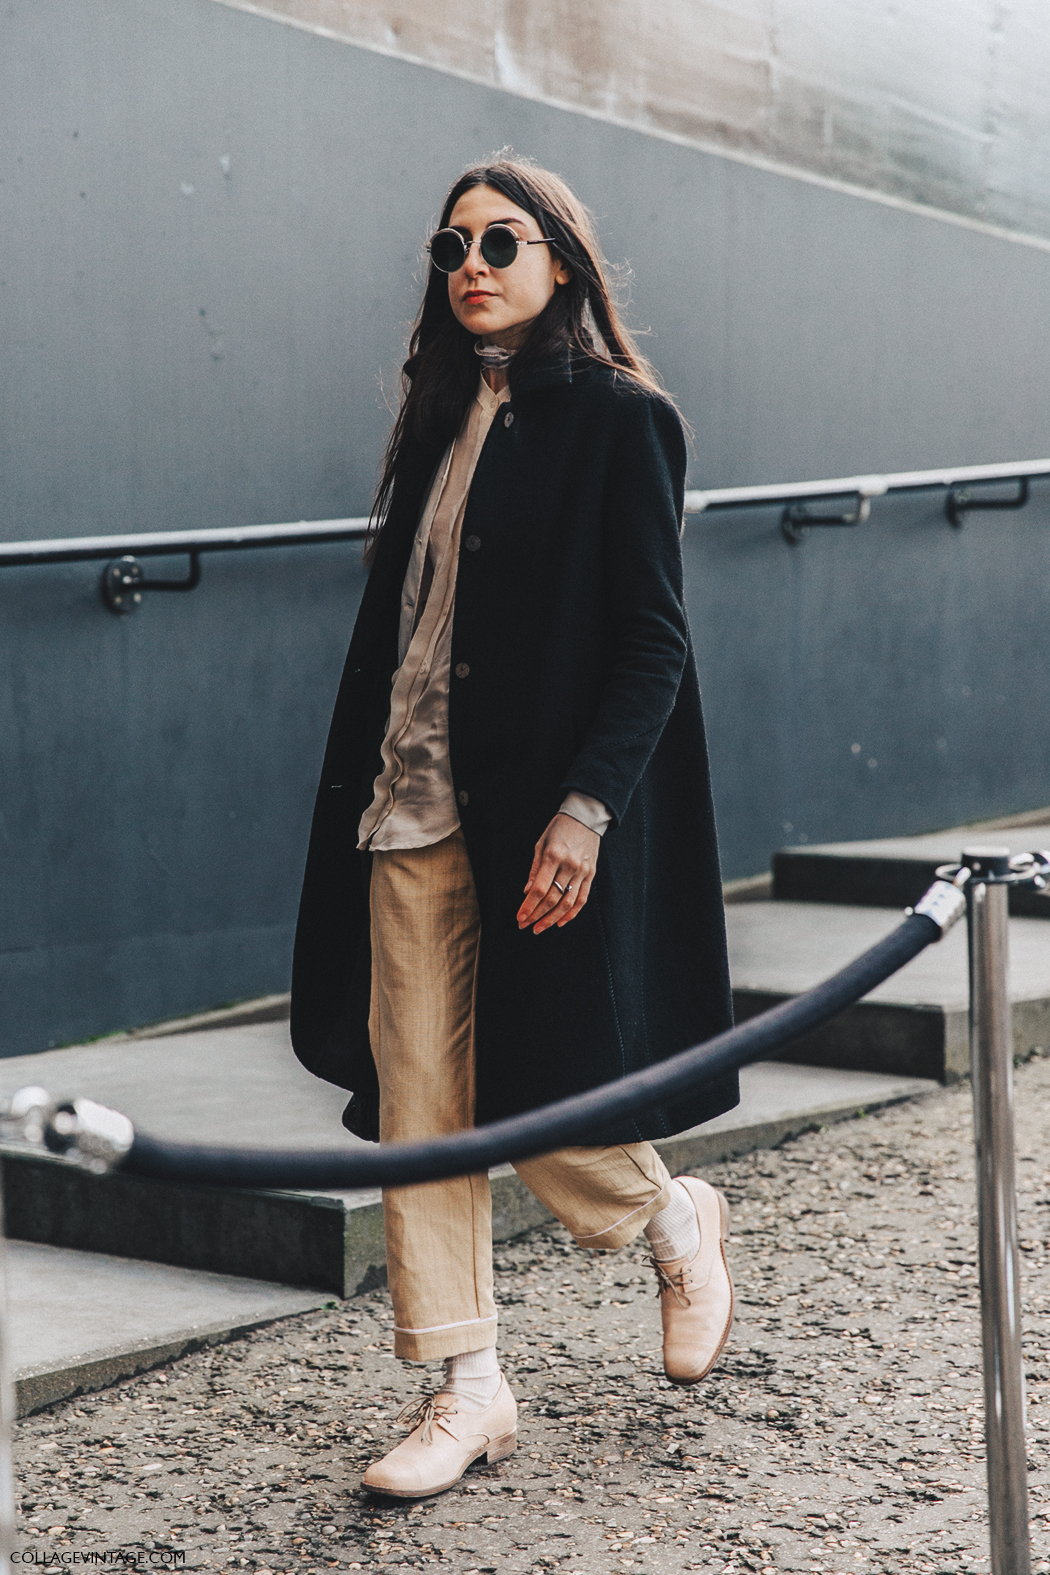 LFW-London_Fashion_Week_Fall_16-Street_Style-Collage_Vintage-7